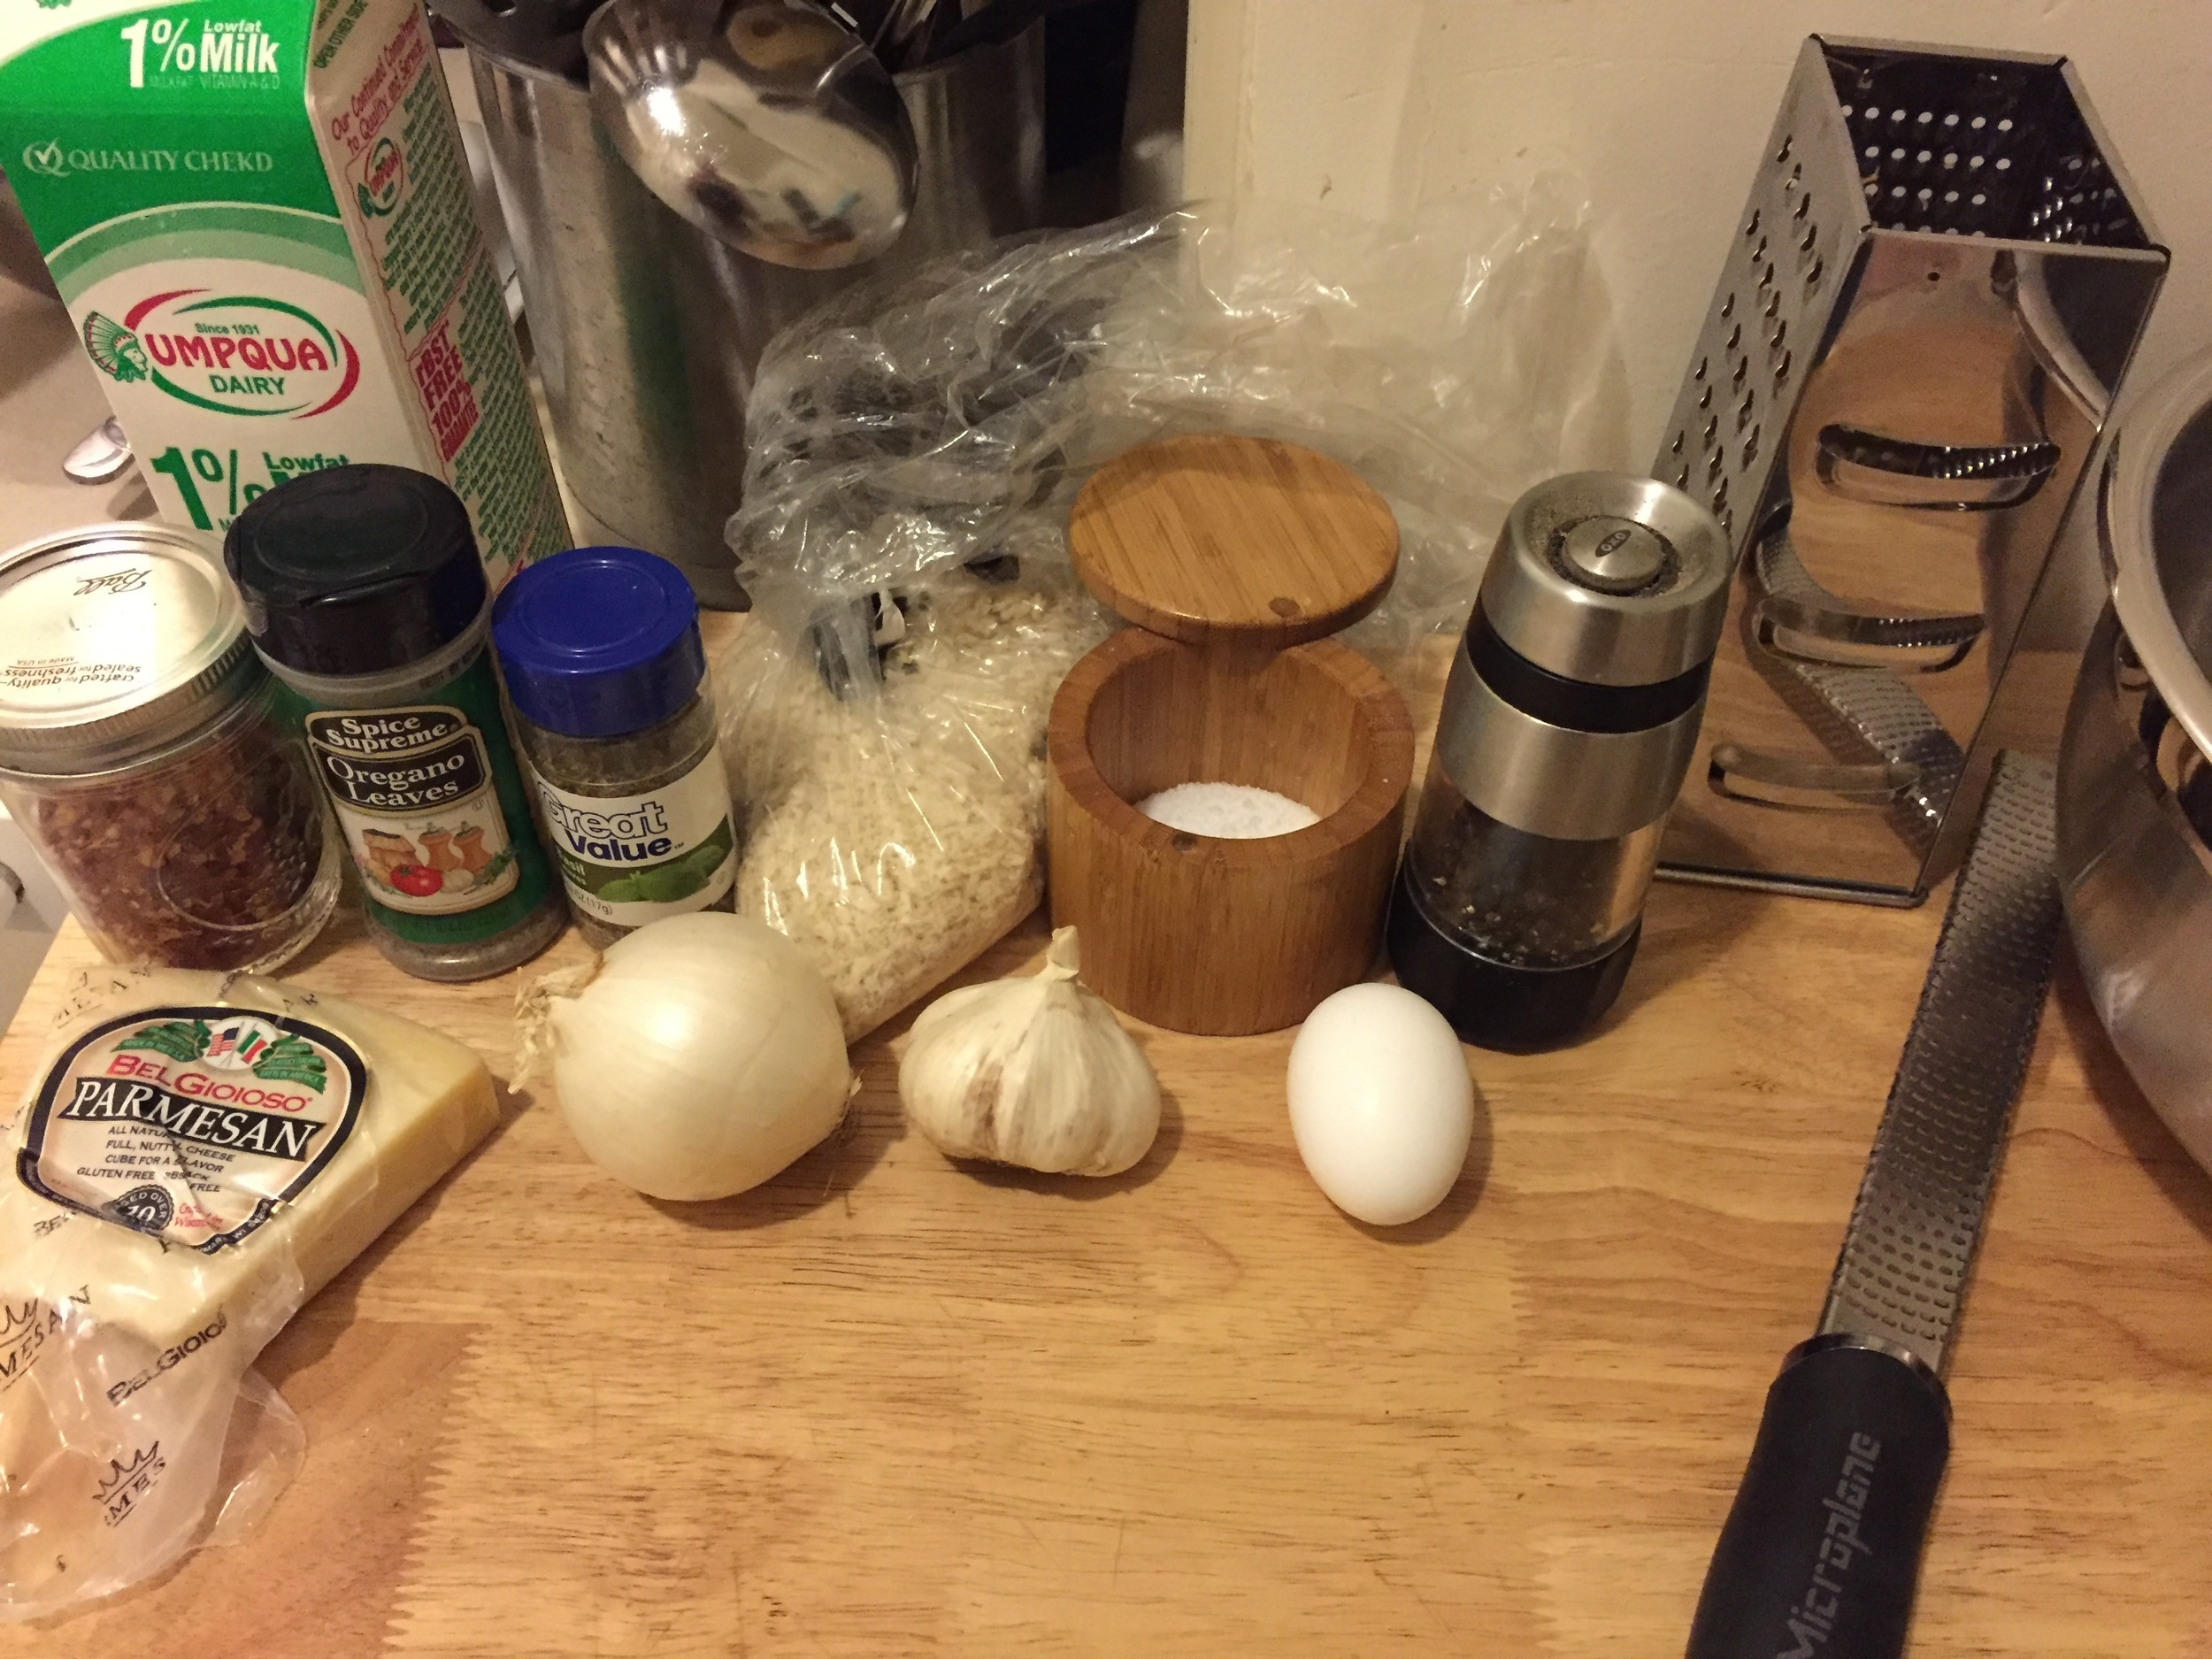 Ingredients, assemble! You would also have your parsley here if you didn't leave it in the fridge like a dummy.